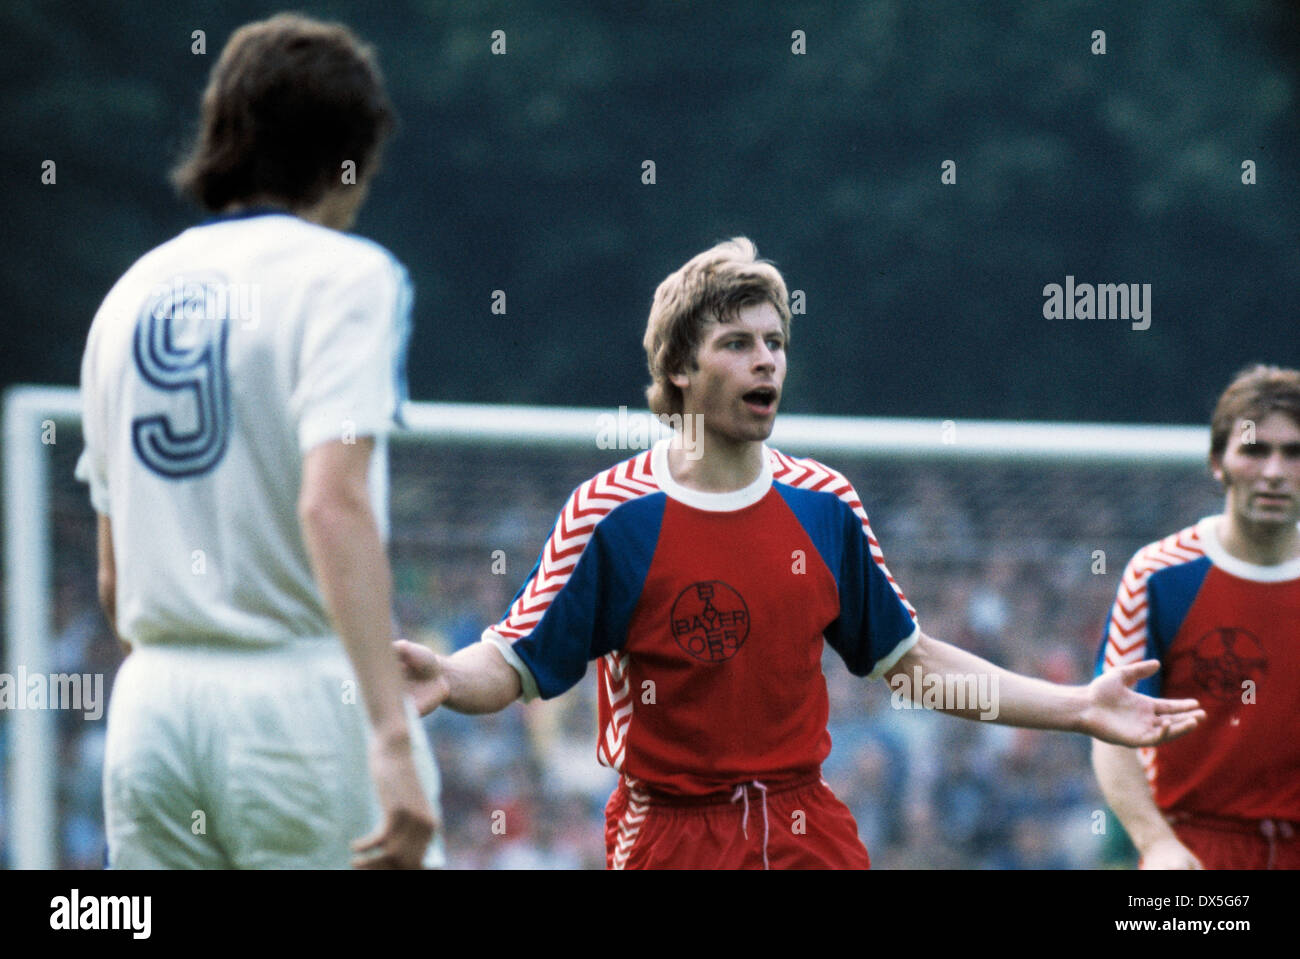 football, 2. Bundesliga Nord, 2. Bundesliga Sued, 1974/1975, relegation match to Bundesliga 1975/1976, return leg, Grotenburg Stadium in Krefeld, FC Bayer 05 Uerdingen versus FK Pirmasens 6:0, scene of the match, Norbert Brinkmann (Uerdingen) - Stock Image